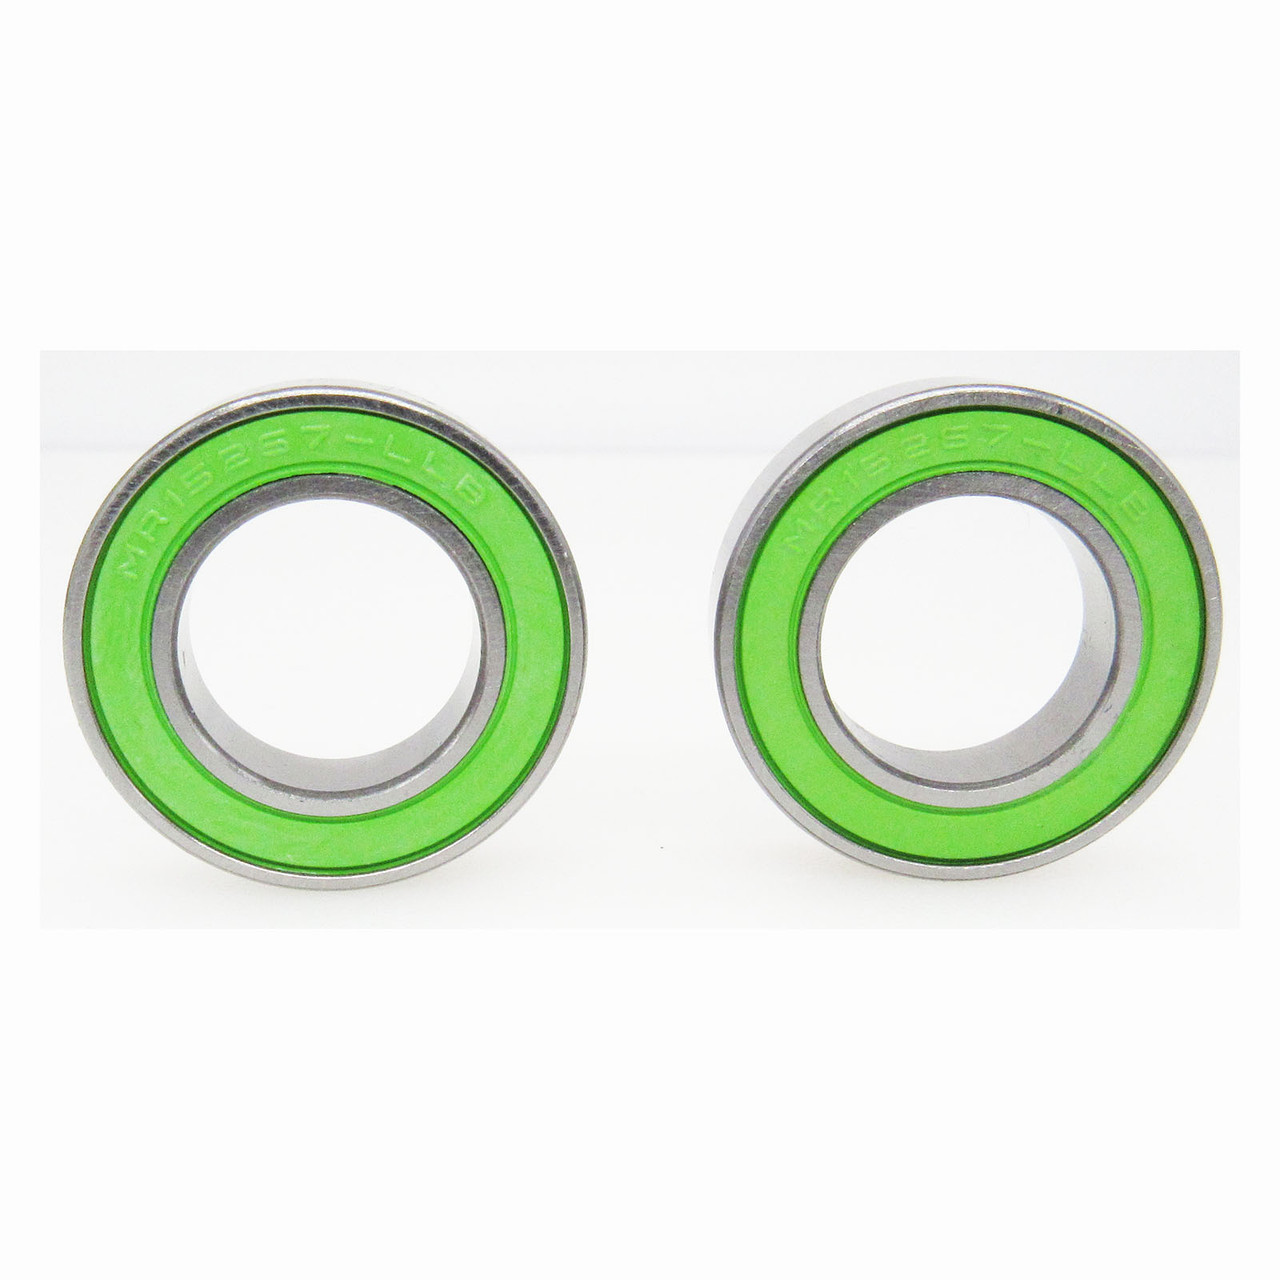 TRB RC 15x26x7mm Precision Ball Bearings ABEC 3 Green Rubber Seals (2)